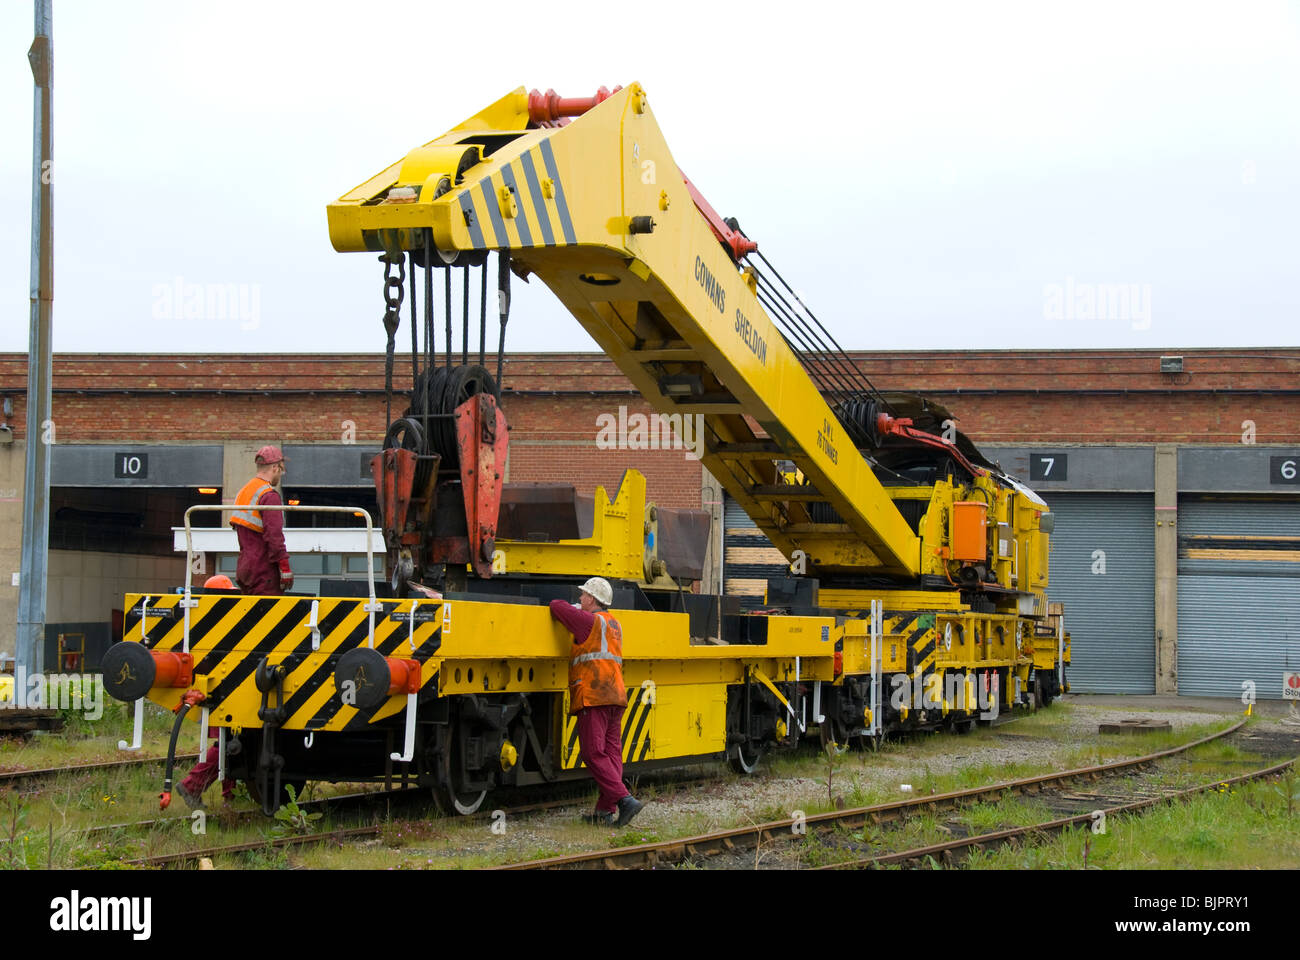 Cowans Sheldon 75 tonne strut jib rail crane.  Stowing the jib on to the relieving bogey.  Teeside, UK Stock Photo